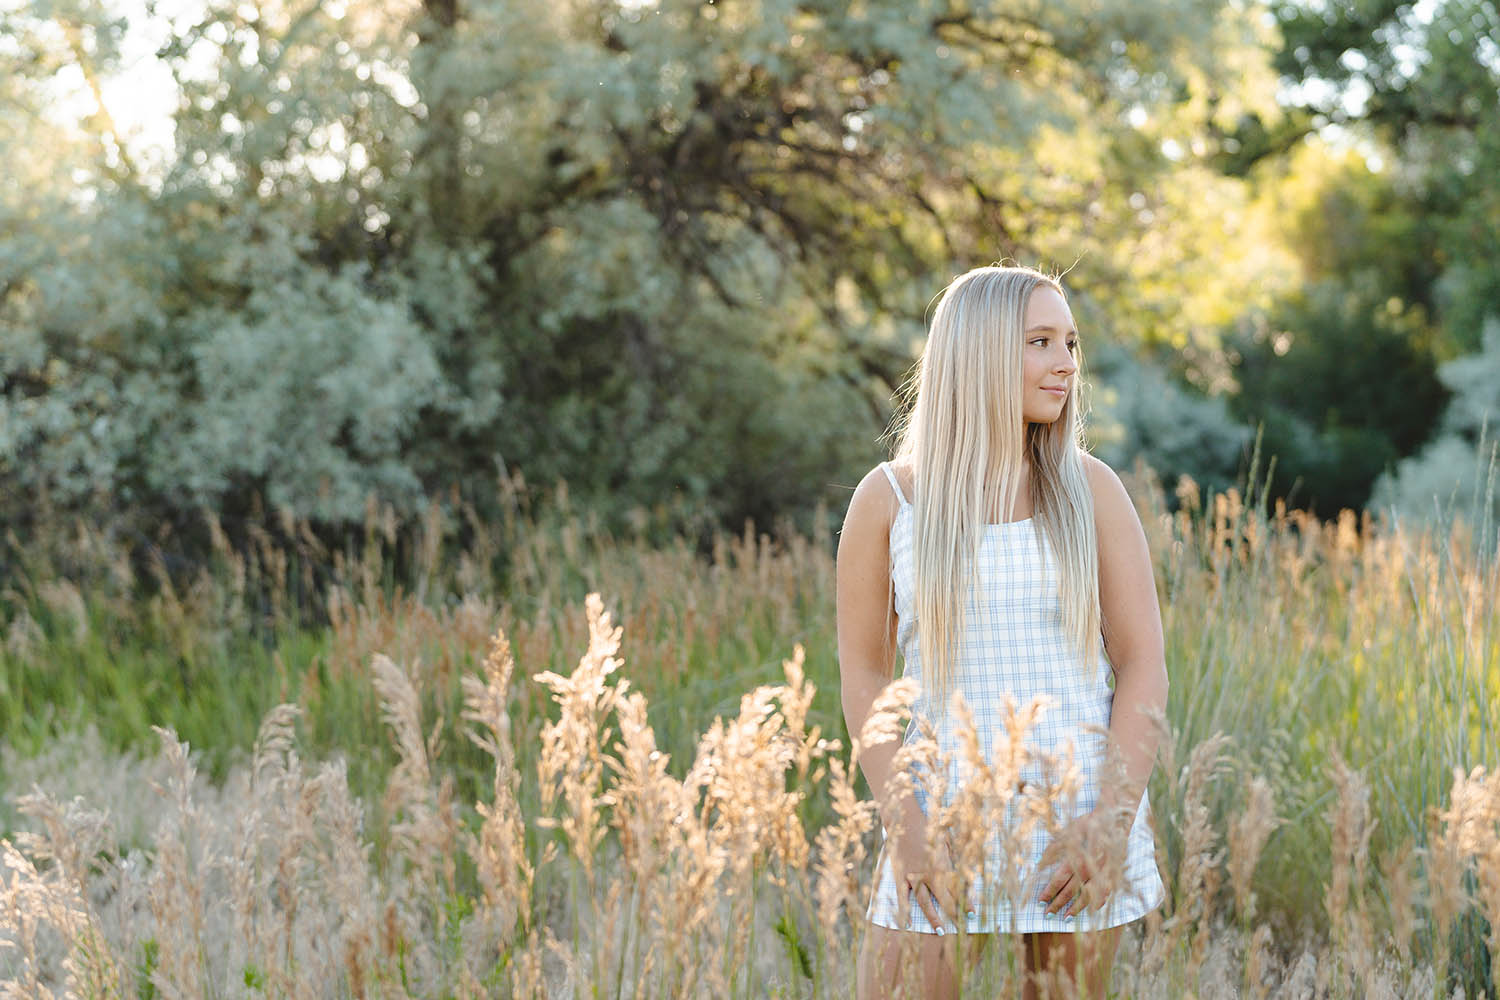 A high school senior girl in a white mini dress stands in a field looking into the distance